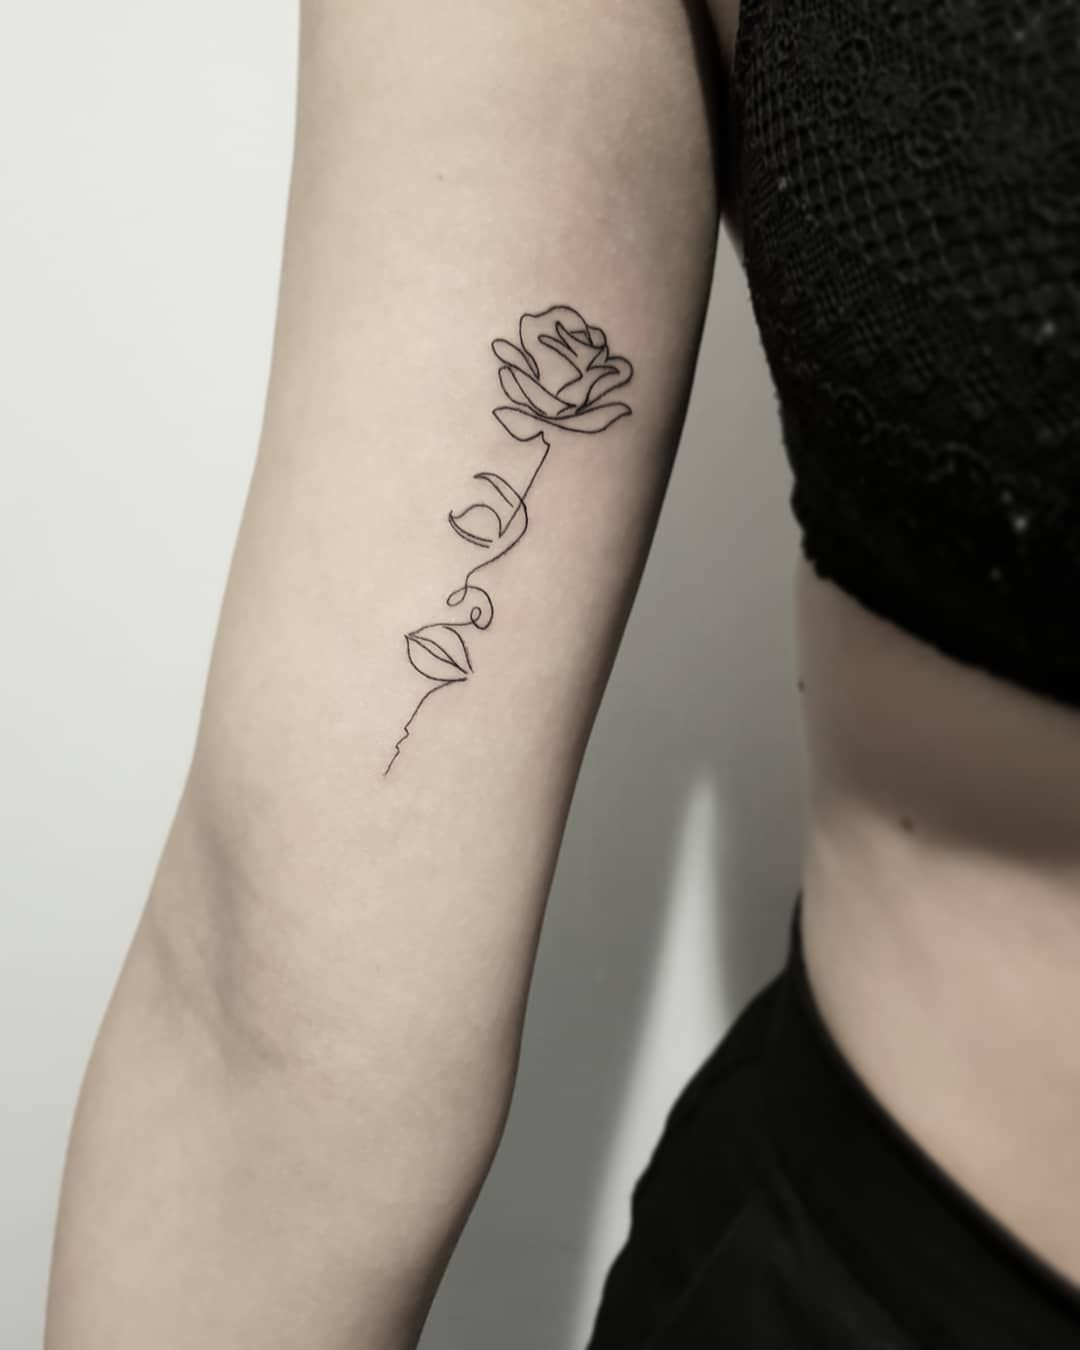 One Line Tattoos 34 Continuous Line Tattoos That Are As Beautiful As They Are Simple Continuous Line Tattoo Line Tattoos Line Art Tattoos